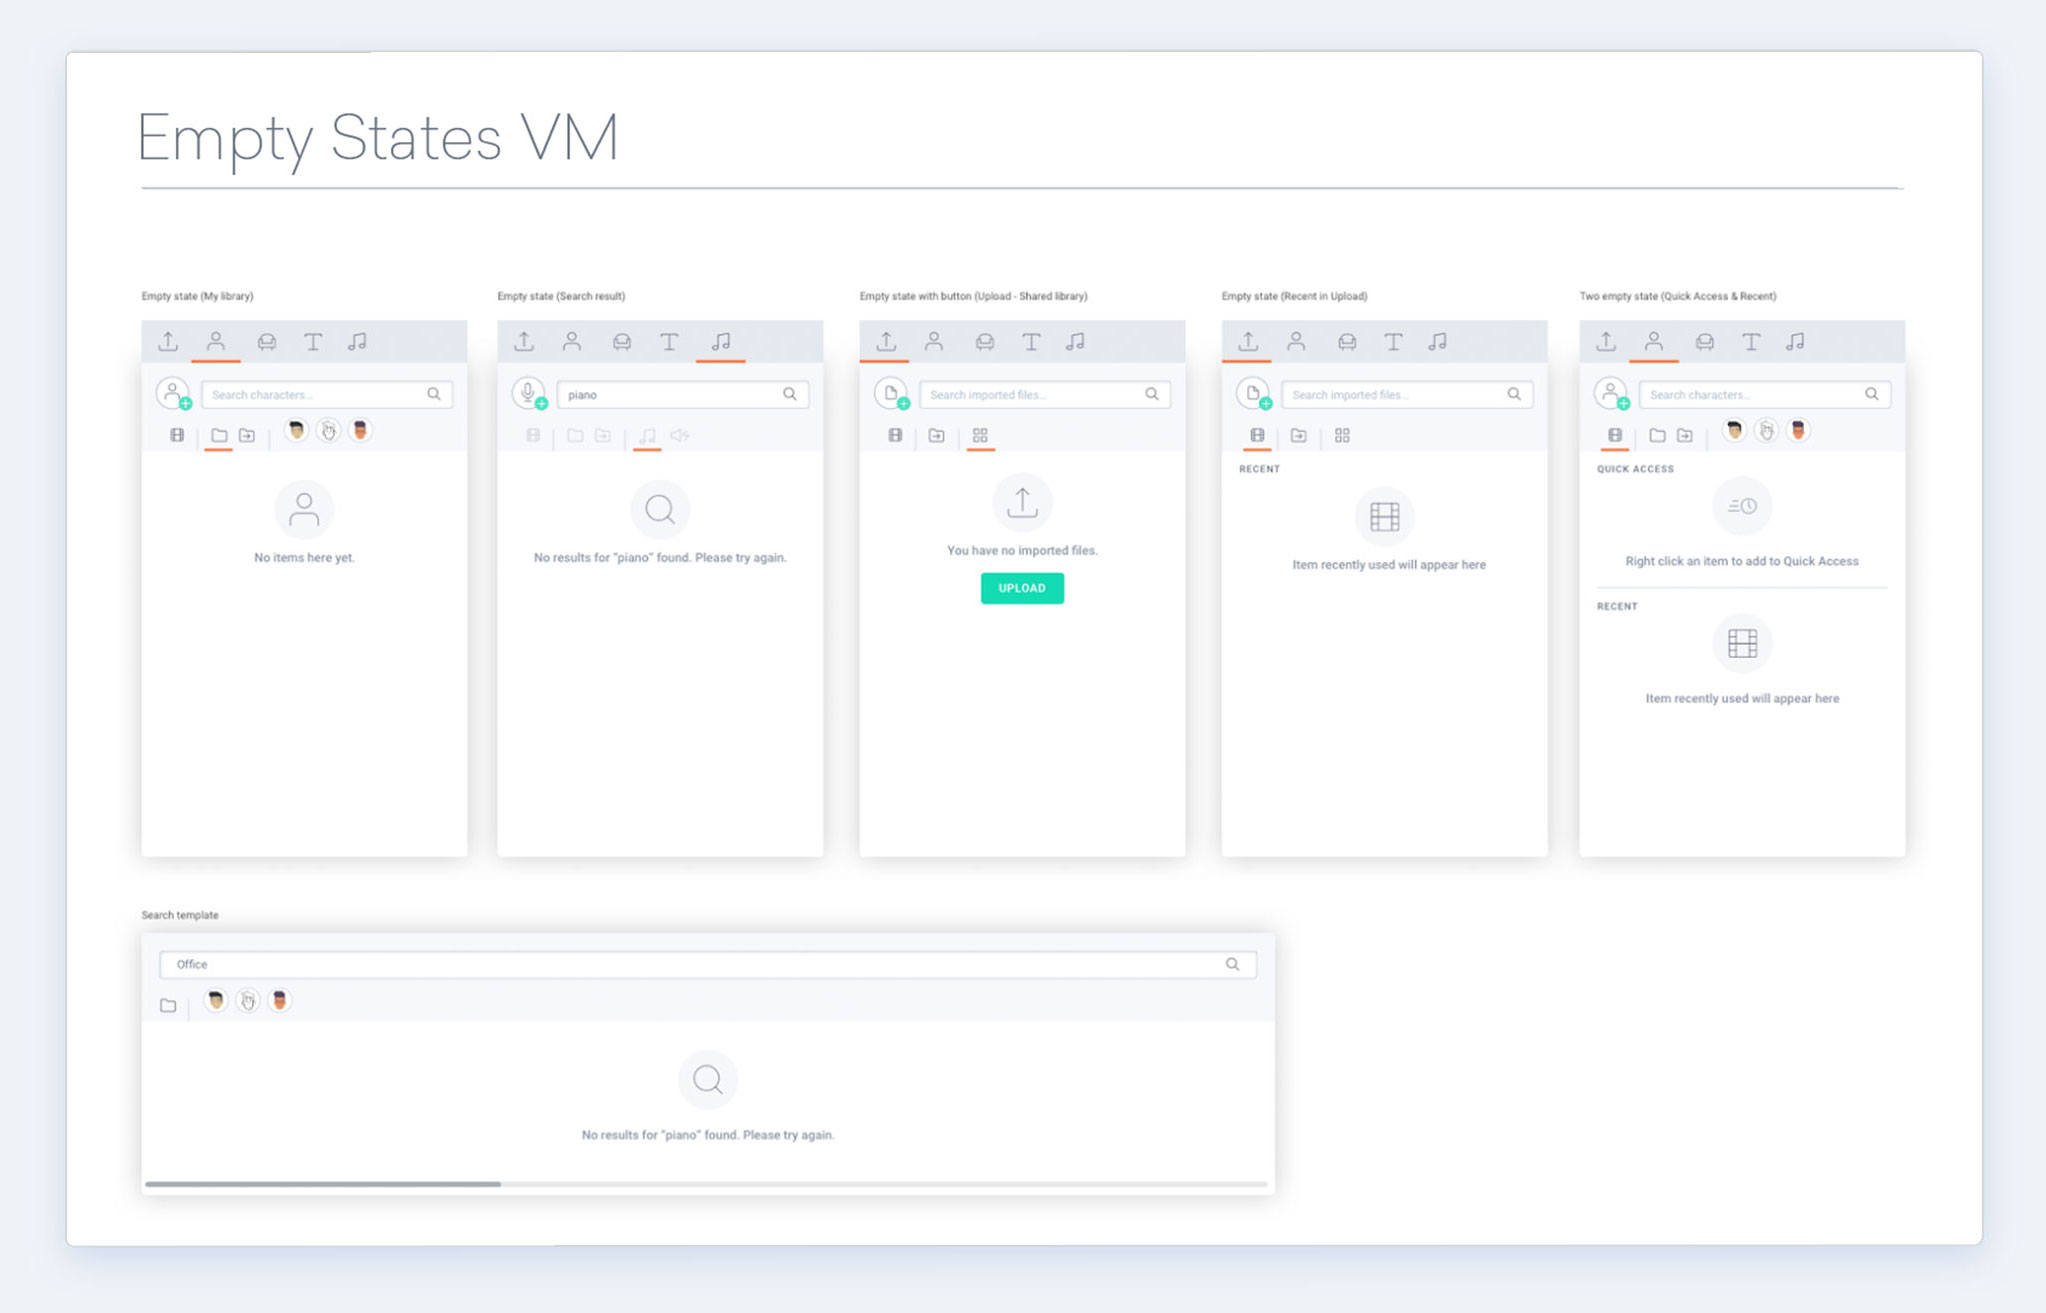 We inventoried every UI element, including empty states